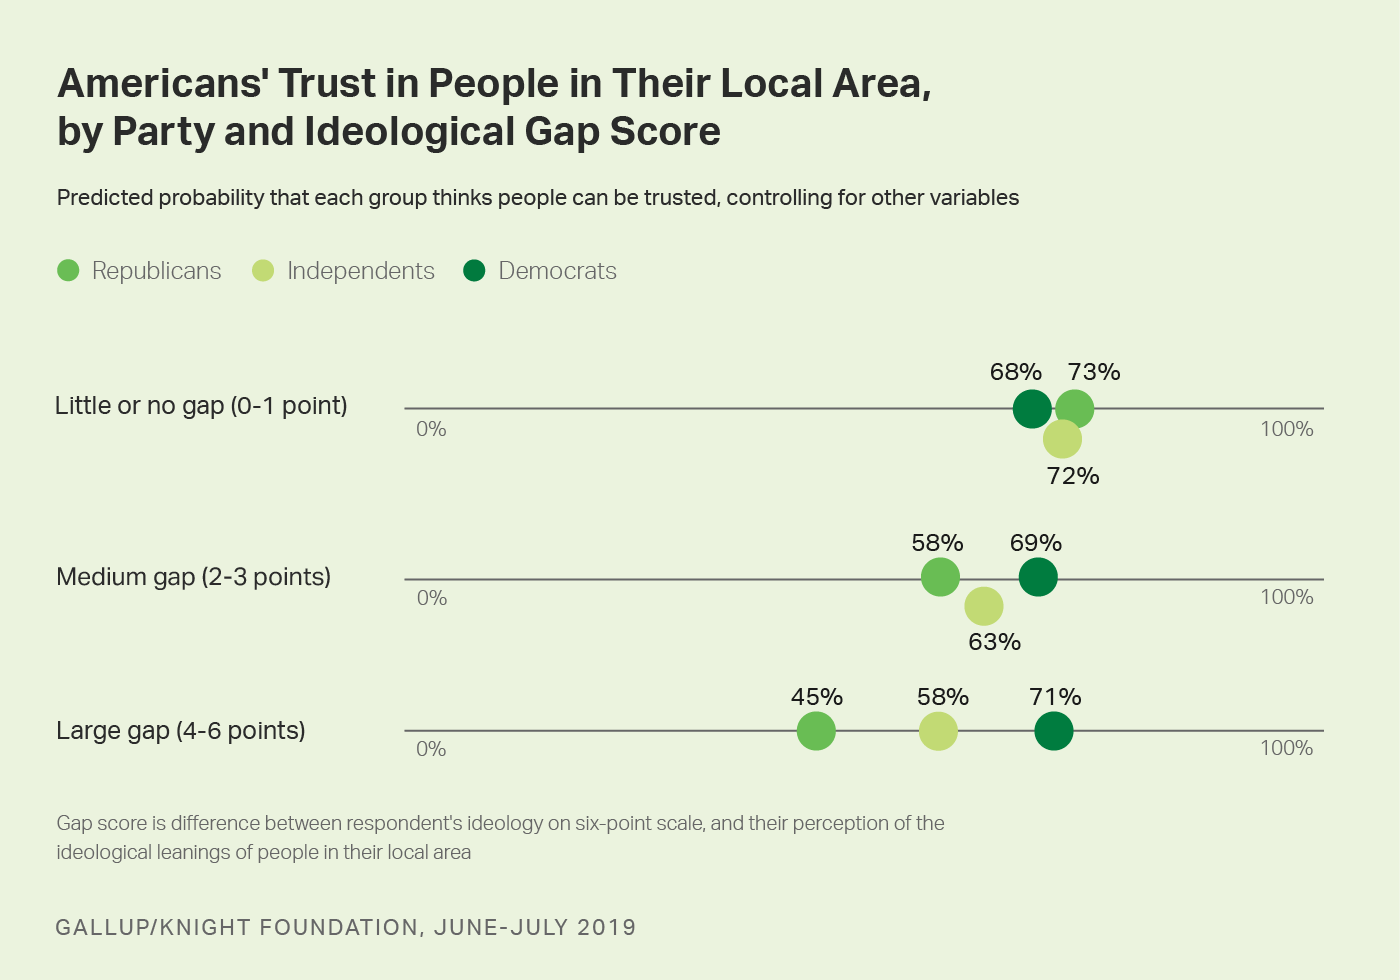 Chart showing % of political party groups who trust their neighbors, by ideological gap score (own vs. communities' ideology).